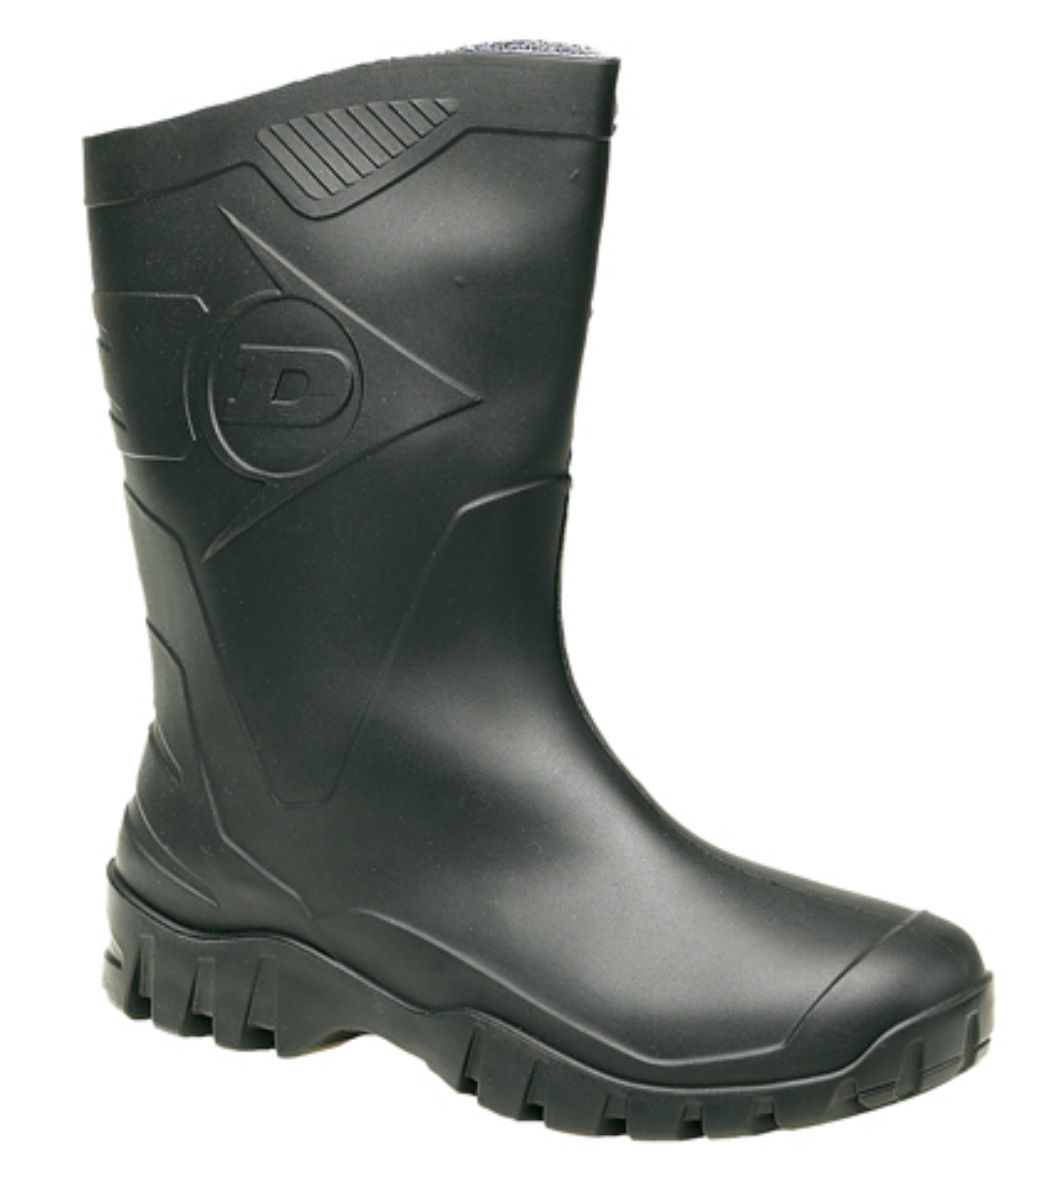 Mens/Ladies Dunlop Dee 4 Widecalf Wellies/Wellingtons Black or Green Sizes 4 Dee to 12 4fd76e